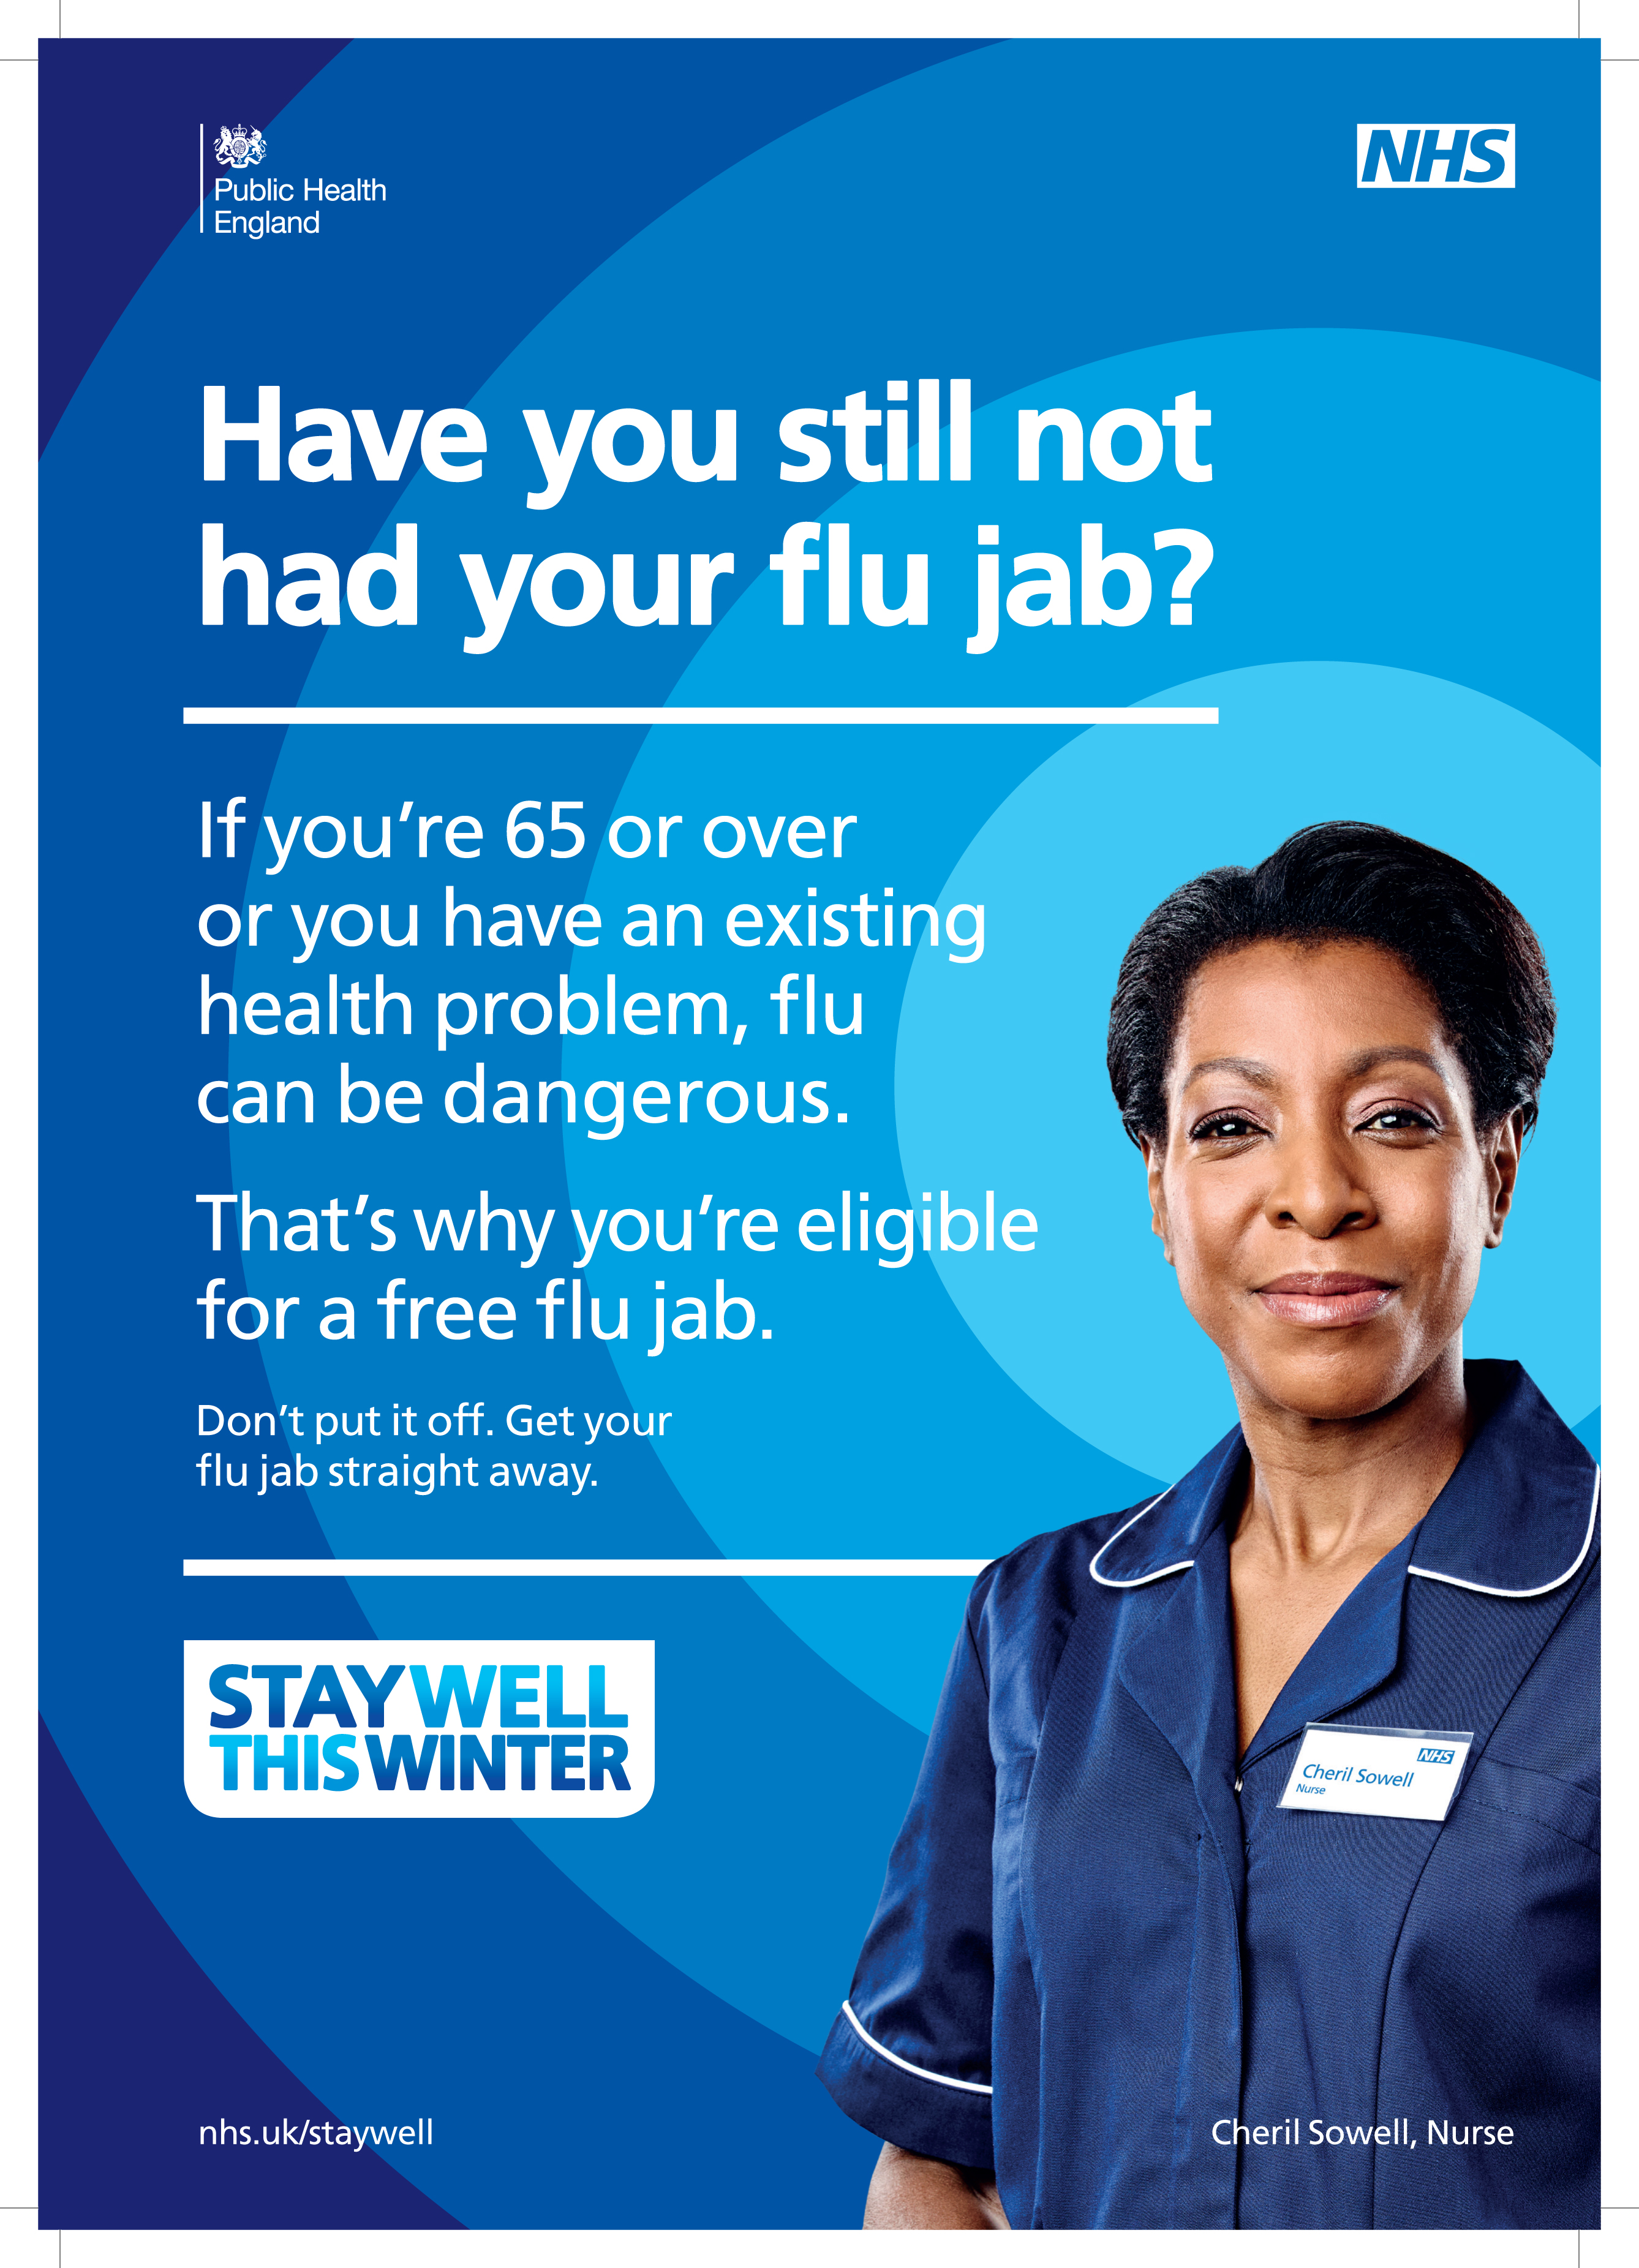 SWTW Have you still not had your flu jab.jpg